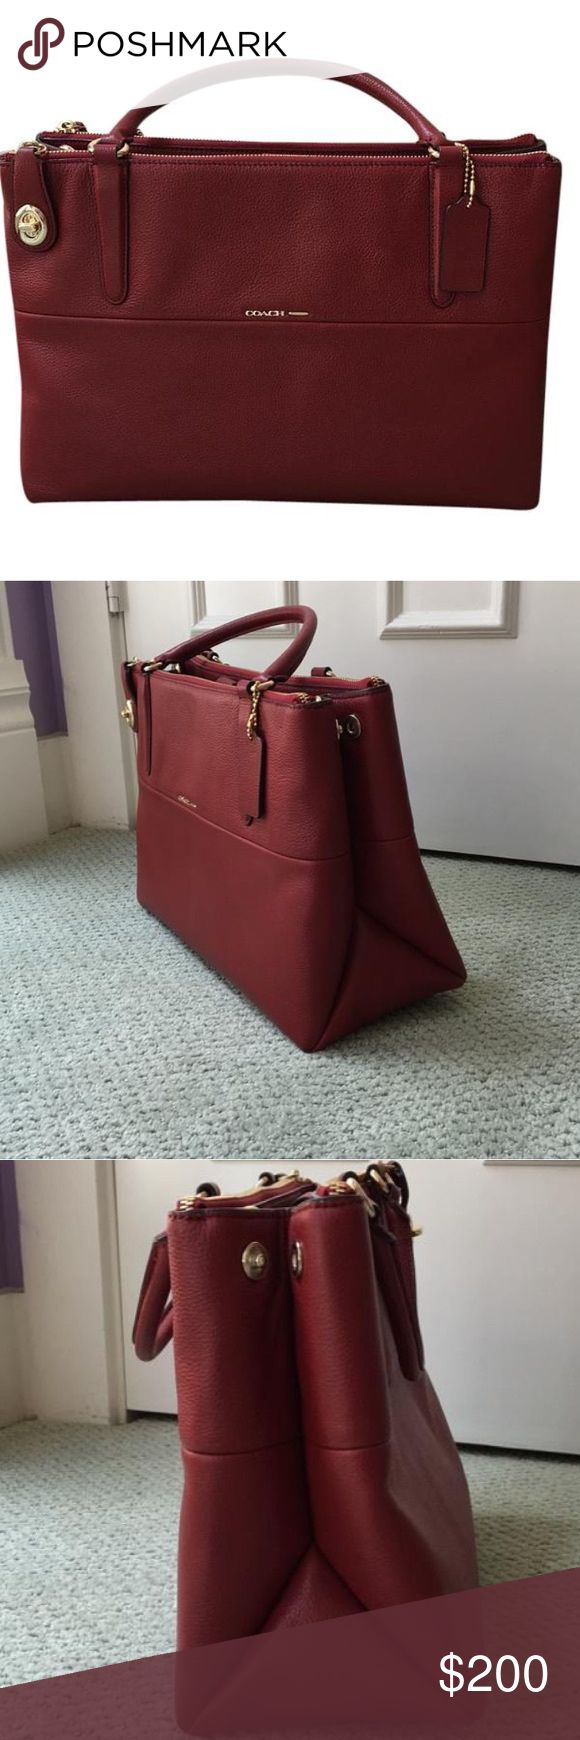 Red Coach Borough Bag Only used a handful of times, mostly to carry my MacBook Air to work and back. Only visible is tiny bit is use on bottom as seen in last pic. It's the Coach bag most seen on celebrities like Jessica Alba and Sarah Jessica Parker. It's a slightly darker red - not the cherry. Coach Bags Satchels